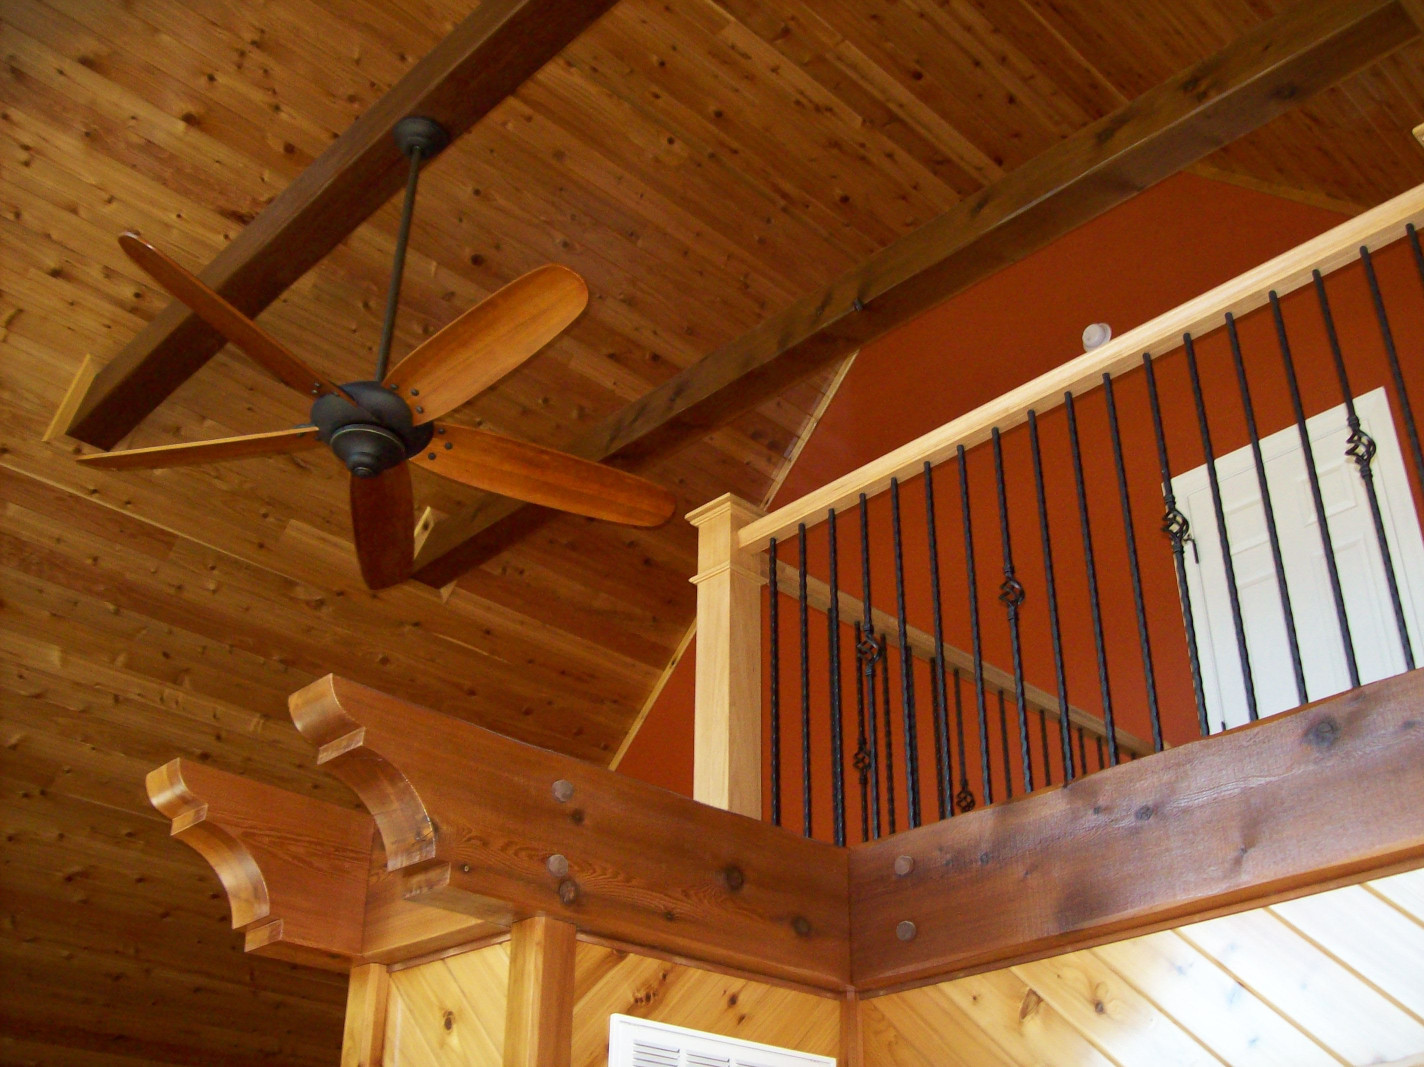 Custom wood beams in this home add curb appeal and fit design needs.